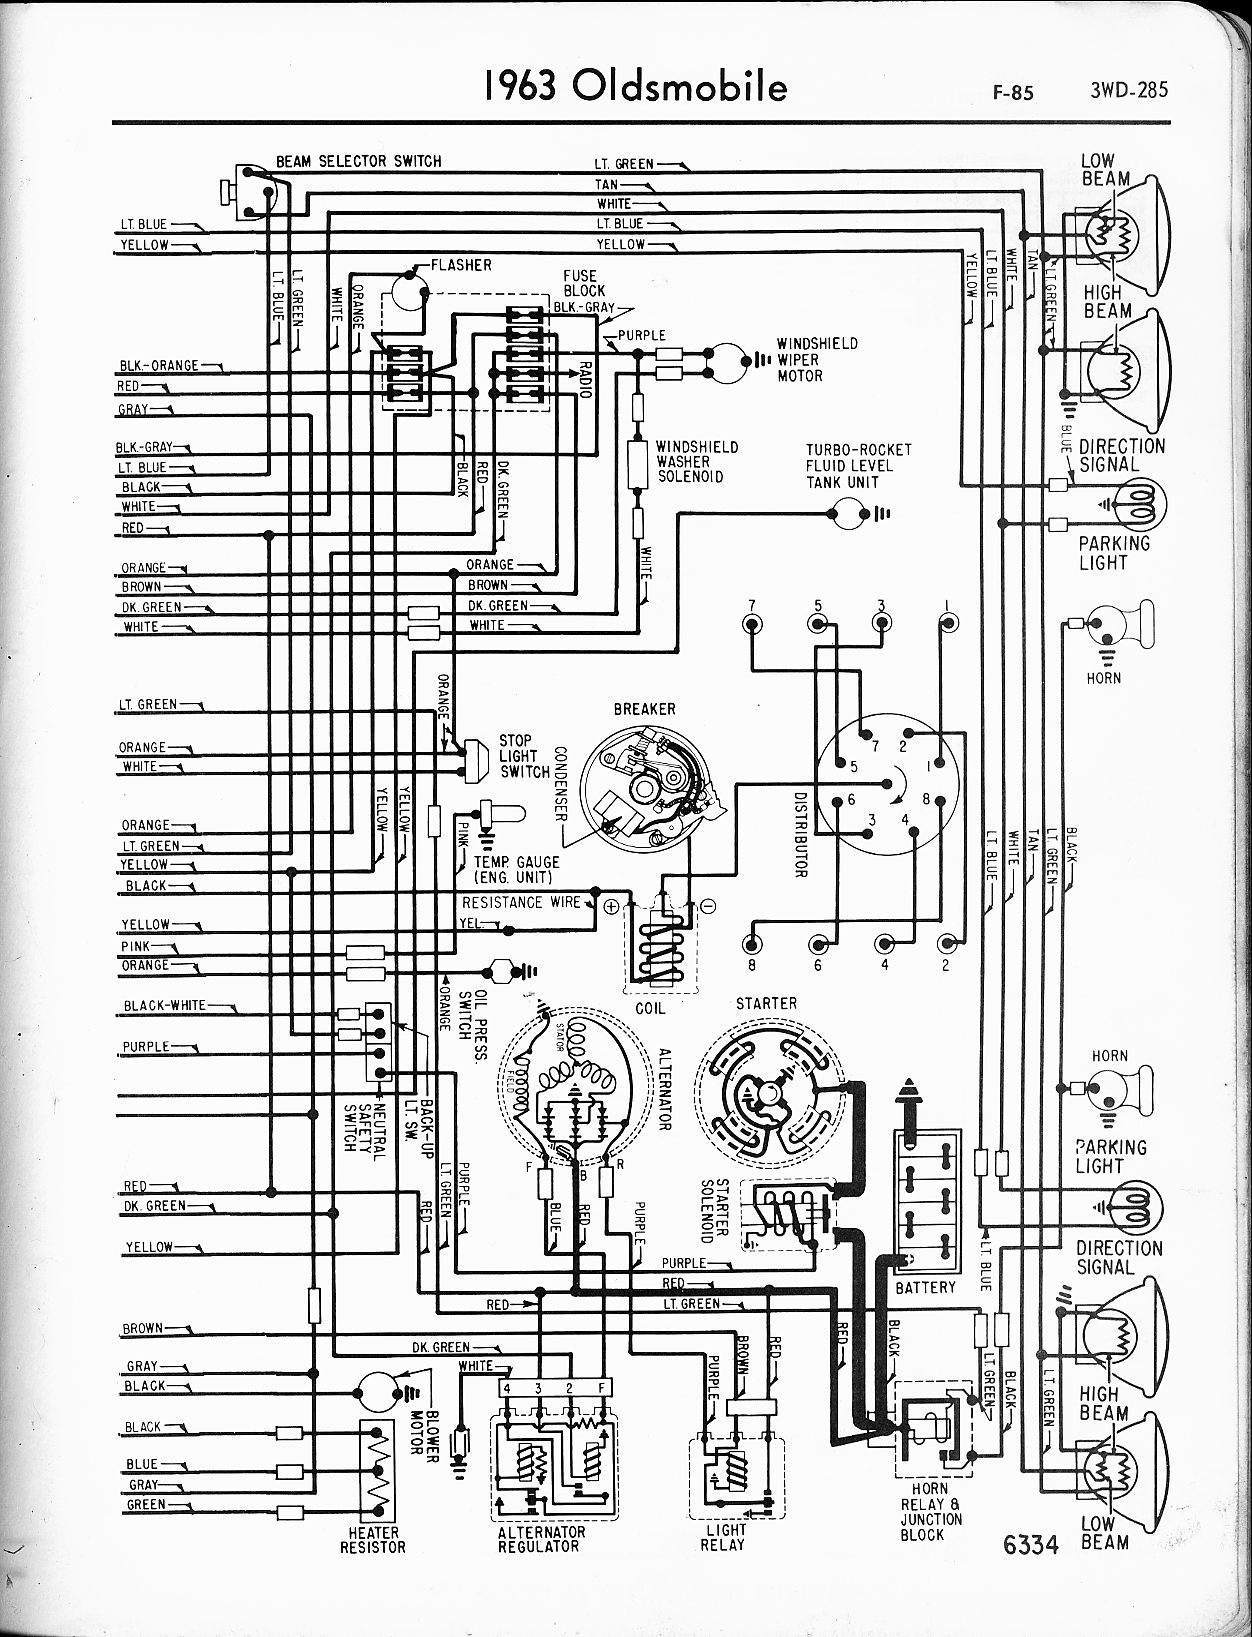 oldsmobile wiring diagrams the old car manual project rh oldcarmanualproject com 2002 Oldsmobile Intrigue 2013 Oldsmobile Intrigue